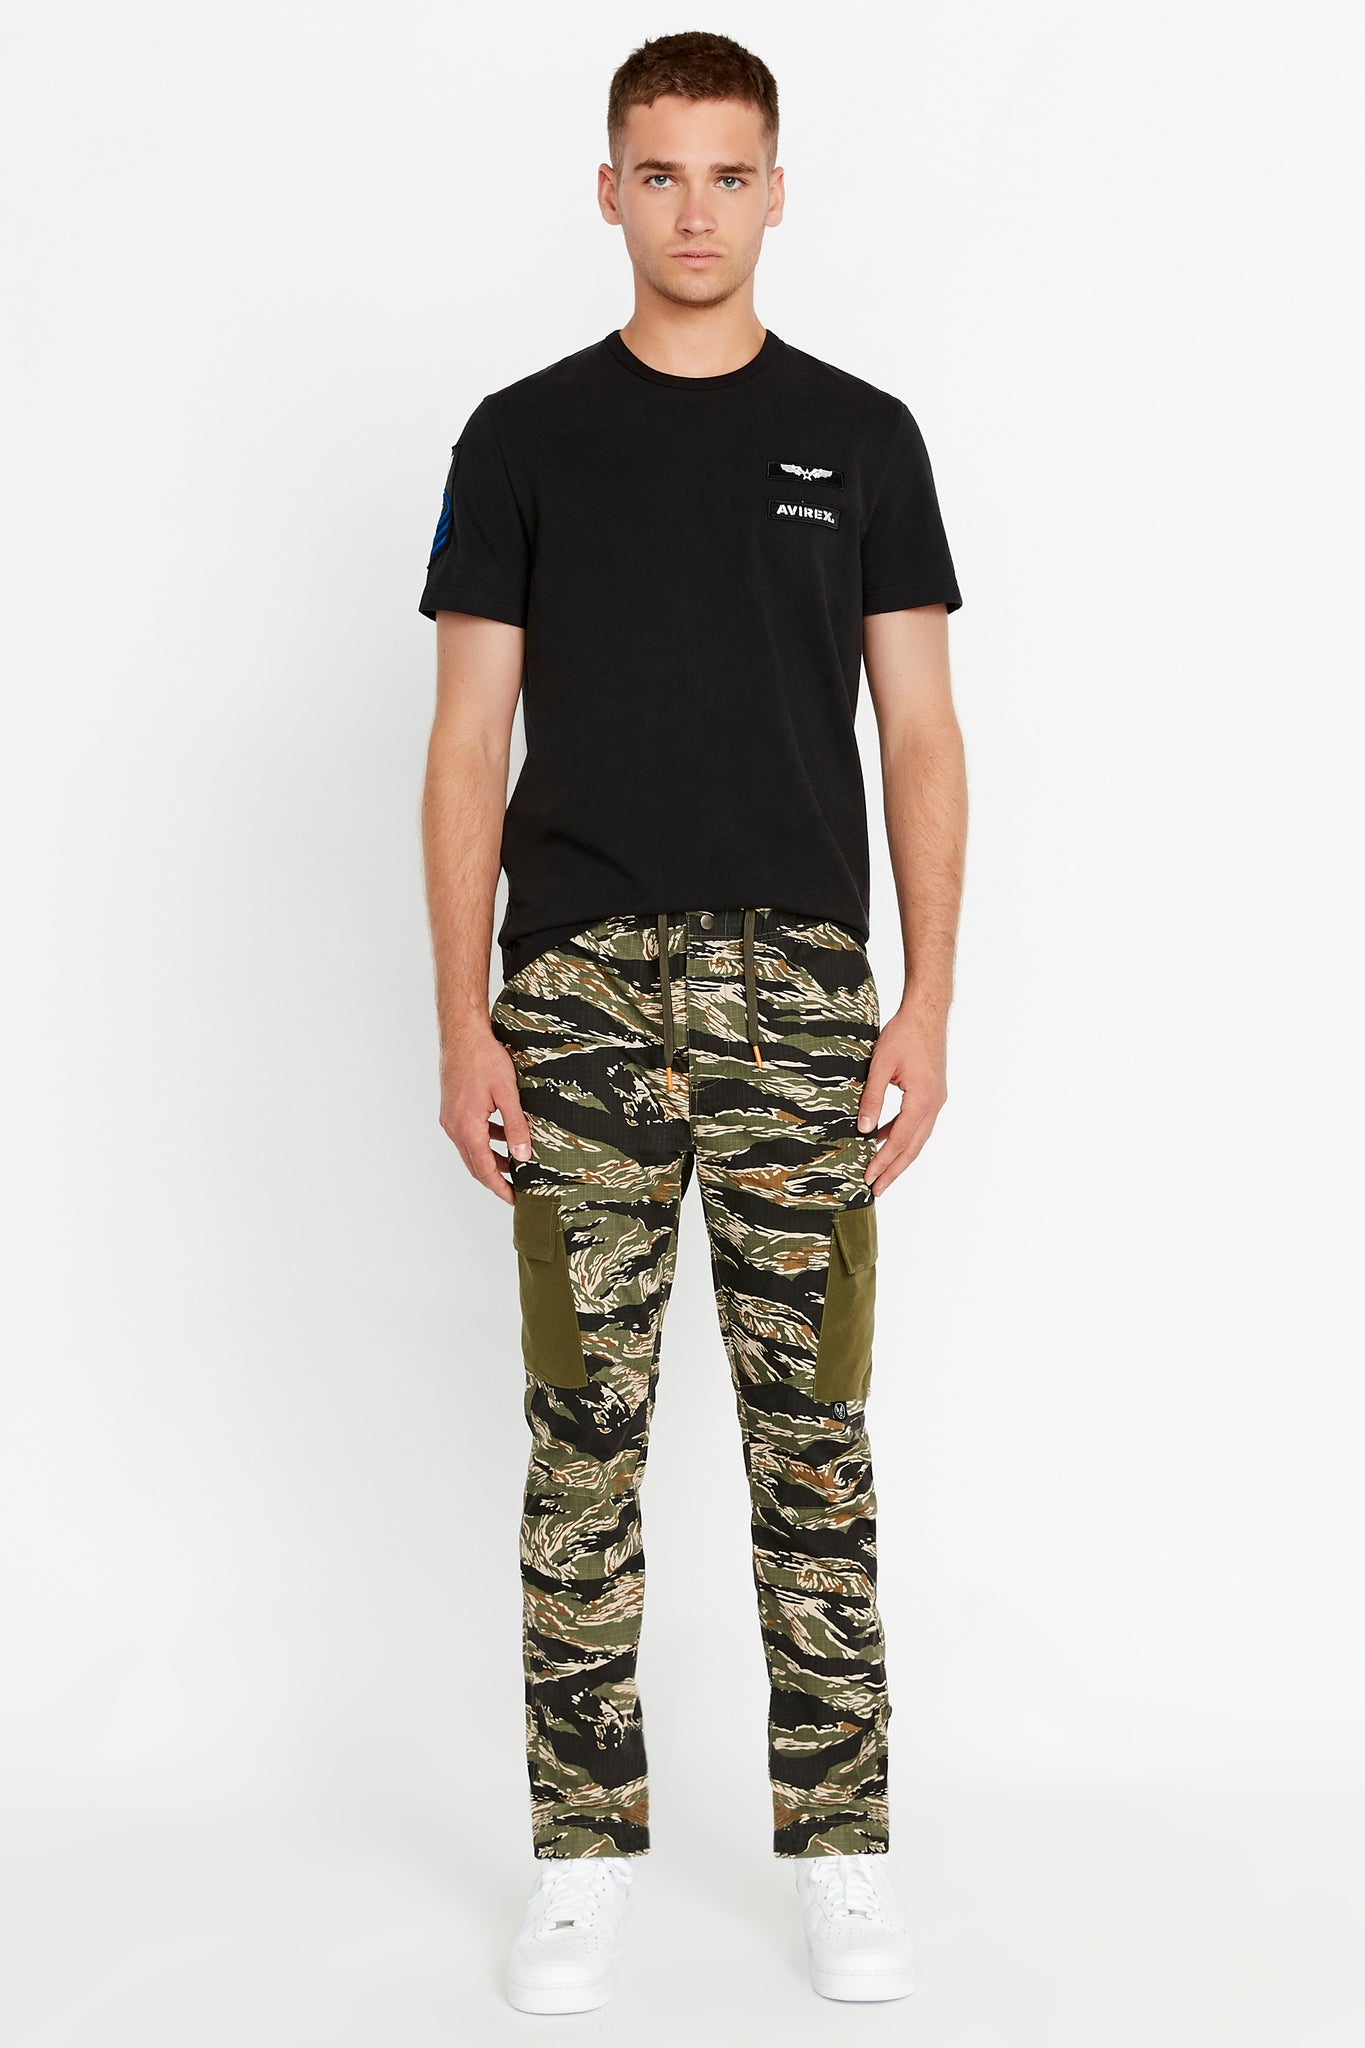 Full view of men wearing a tigerstripe camo print pants with side cargo pockets in solid color and black short sleeve crew neck T-Shirt